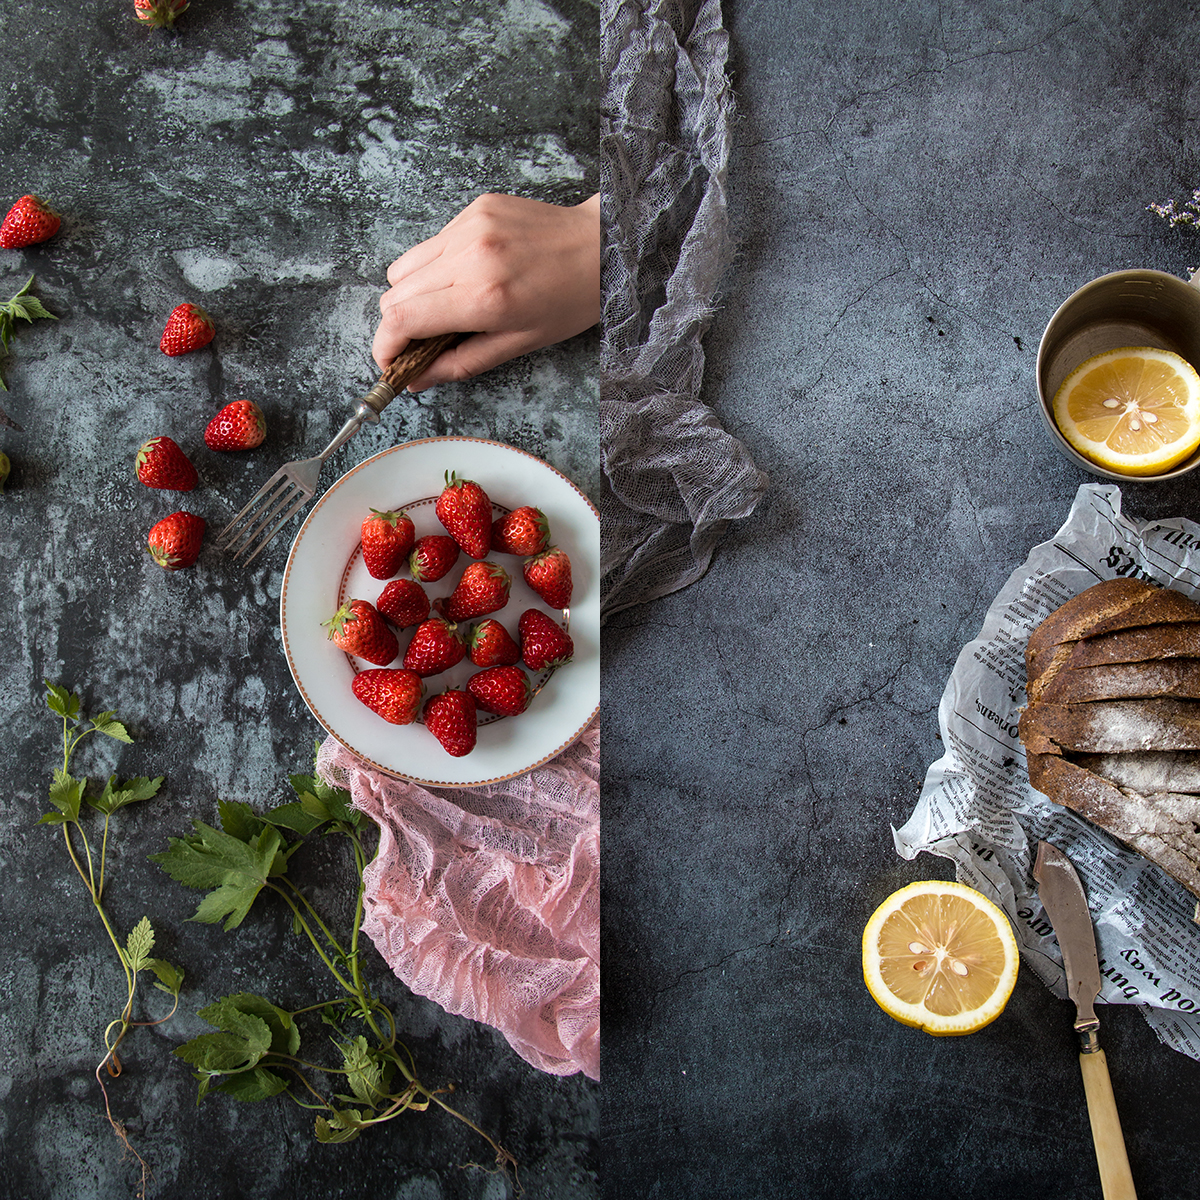 Usd 6 10 Imitation Cement Textured Background Paper Ins Vintage Dark Food Photography Props Marble Photo Background Scene Wholesale From China Online Shopping Buy Asian Products Online From The Best Shoping